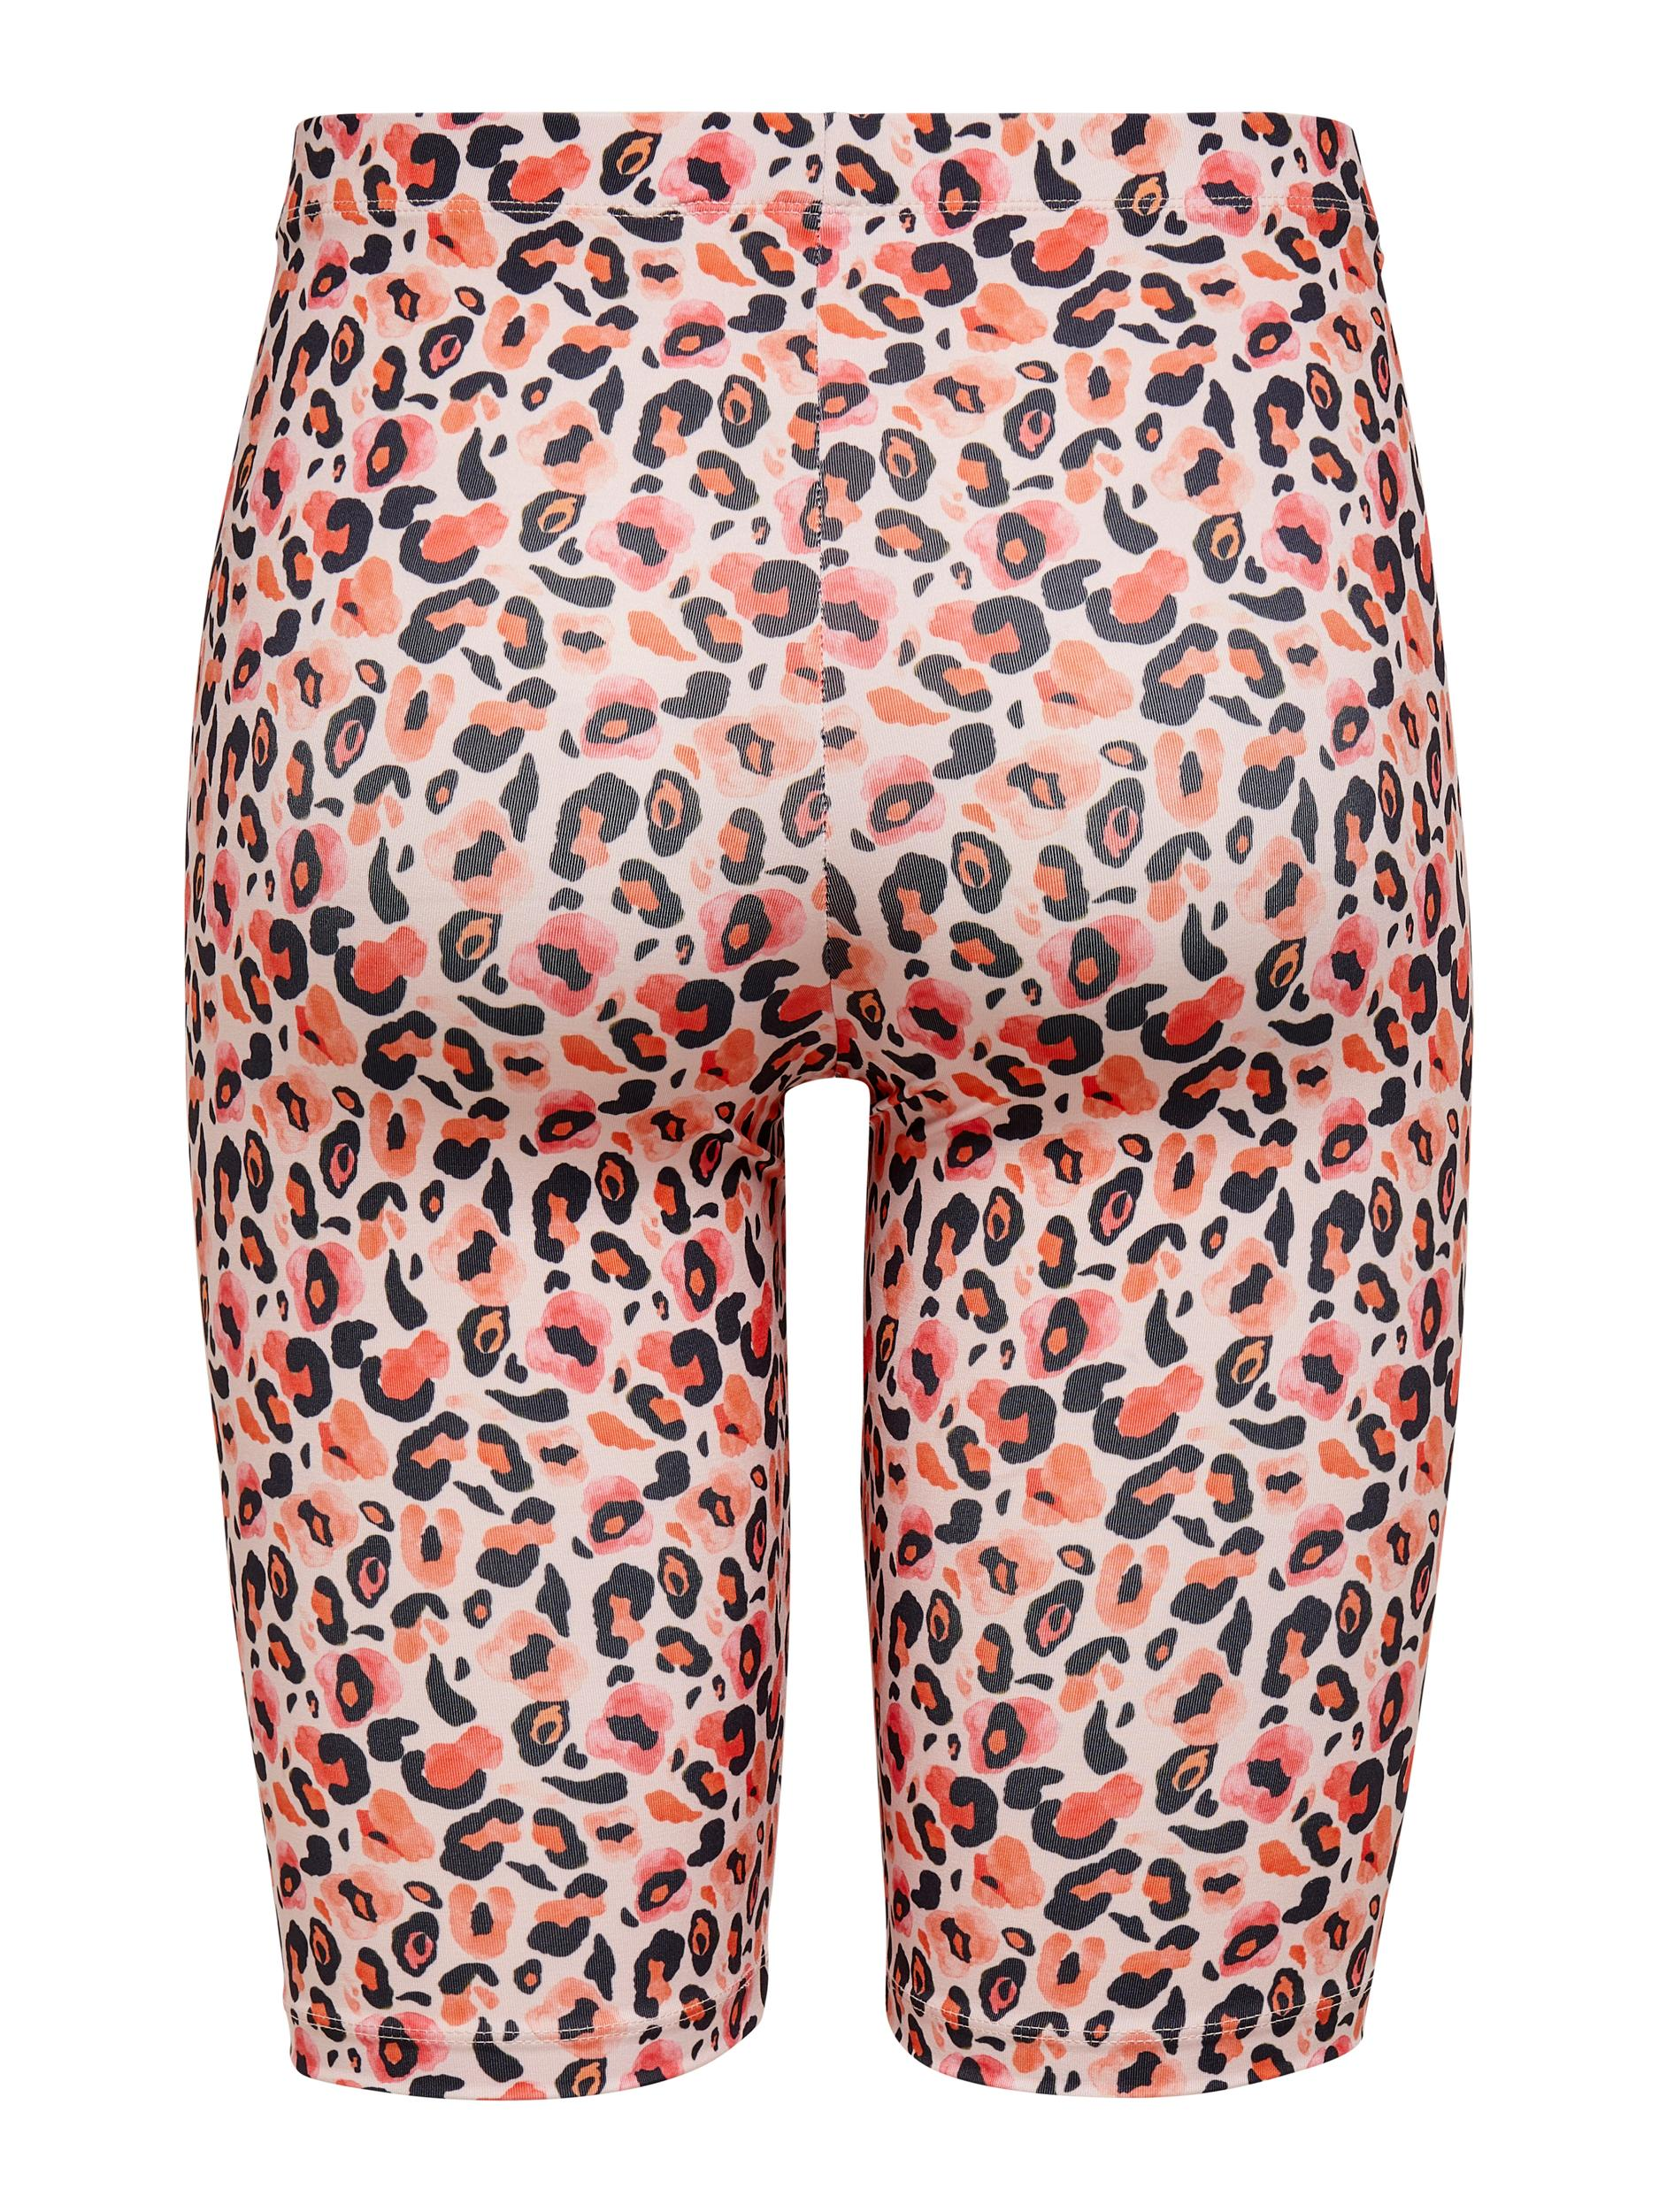 Jacqueline de Young Rossy biker shorts, adobe rose, x-small